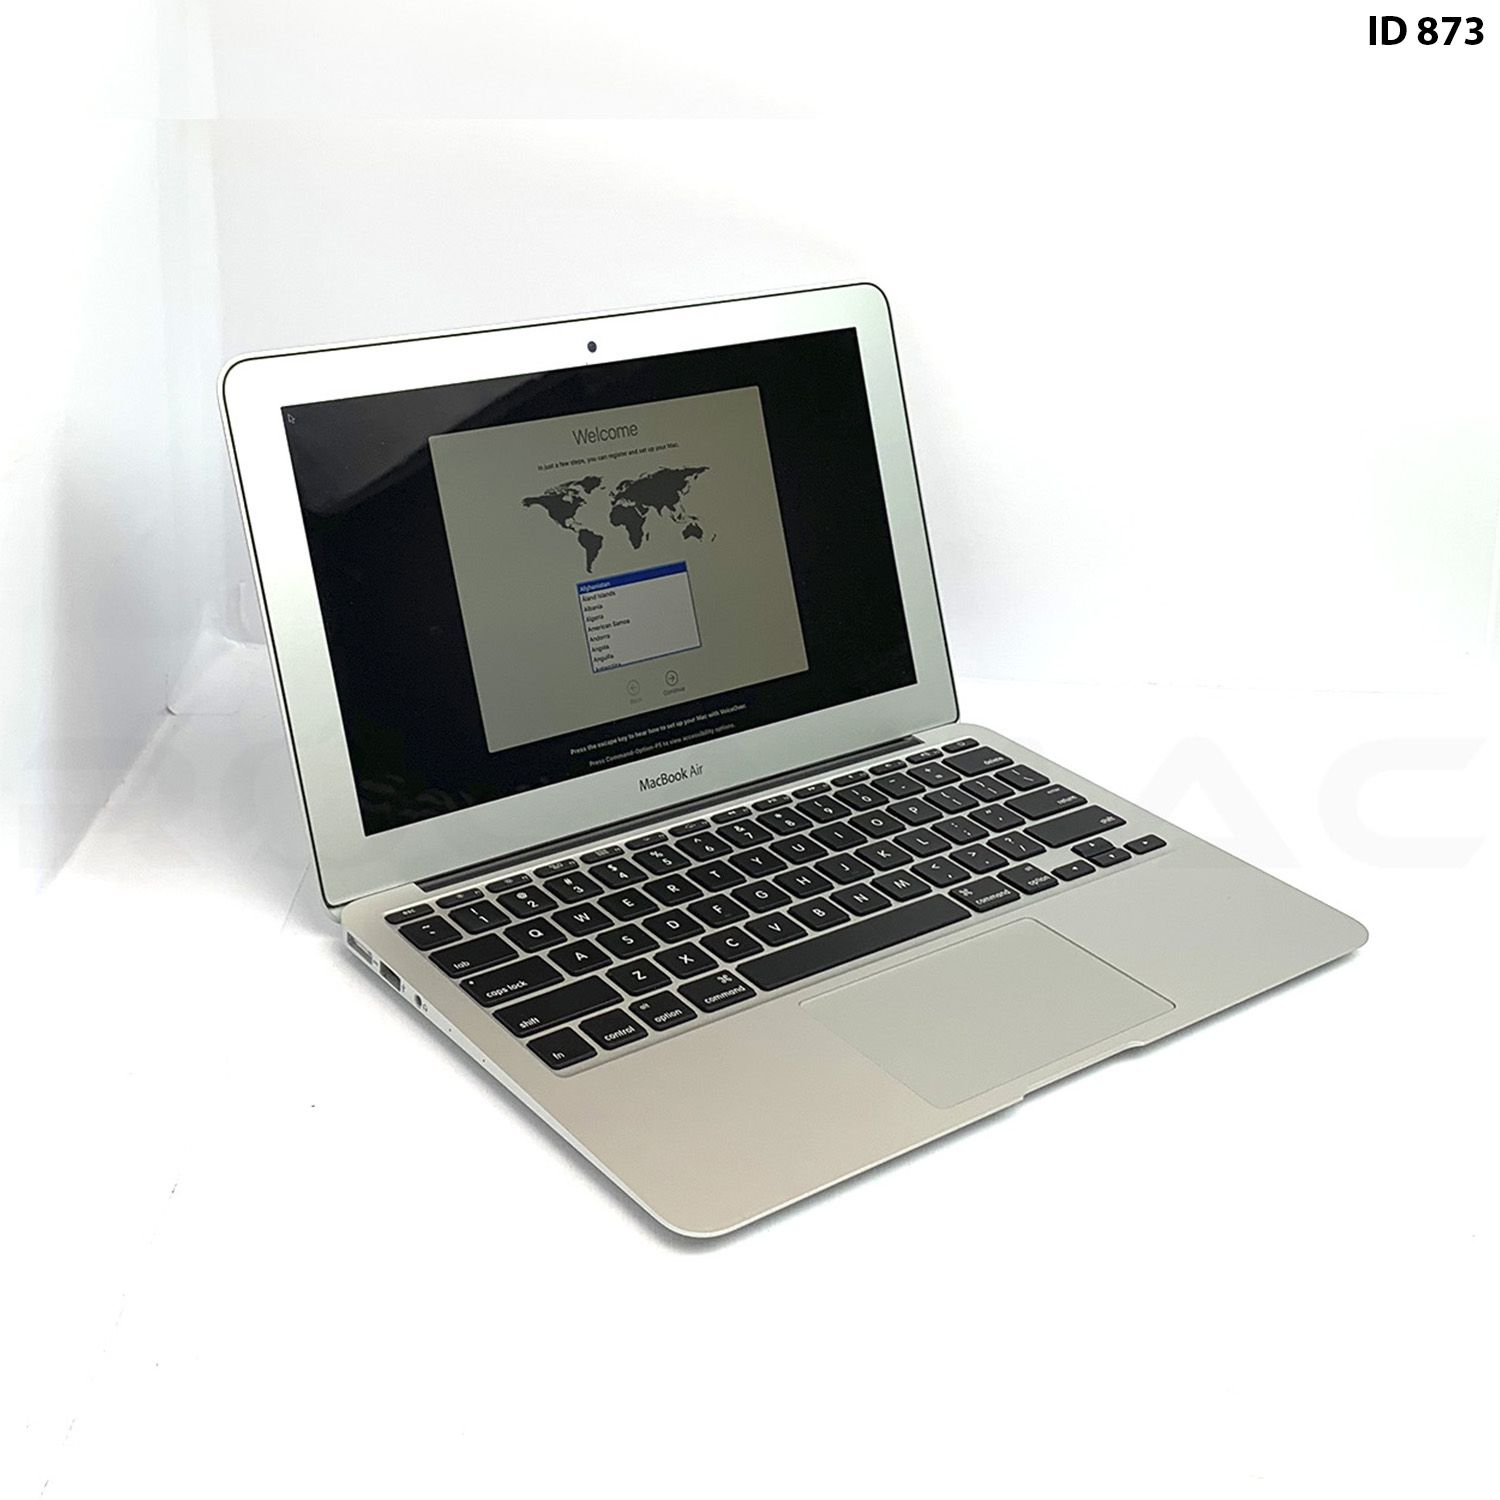 Macbook Air 11 i5 1.6Ghz 4GB 128GB SSD MC968LL/A Seminovo